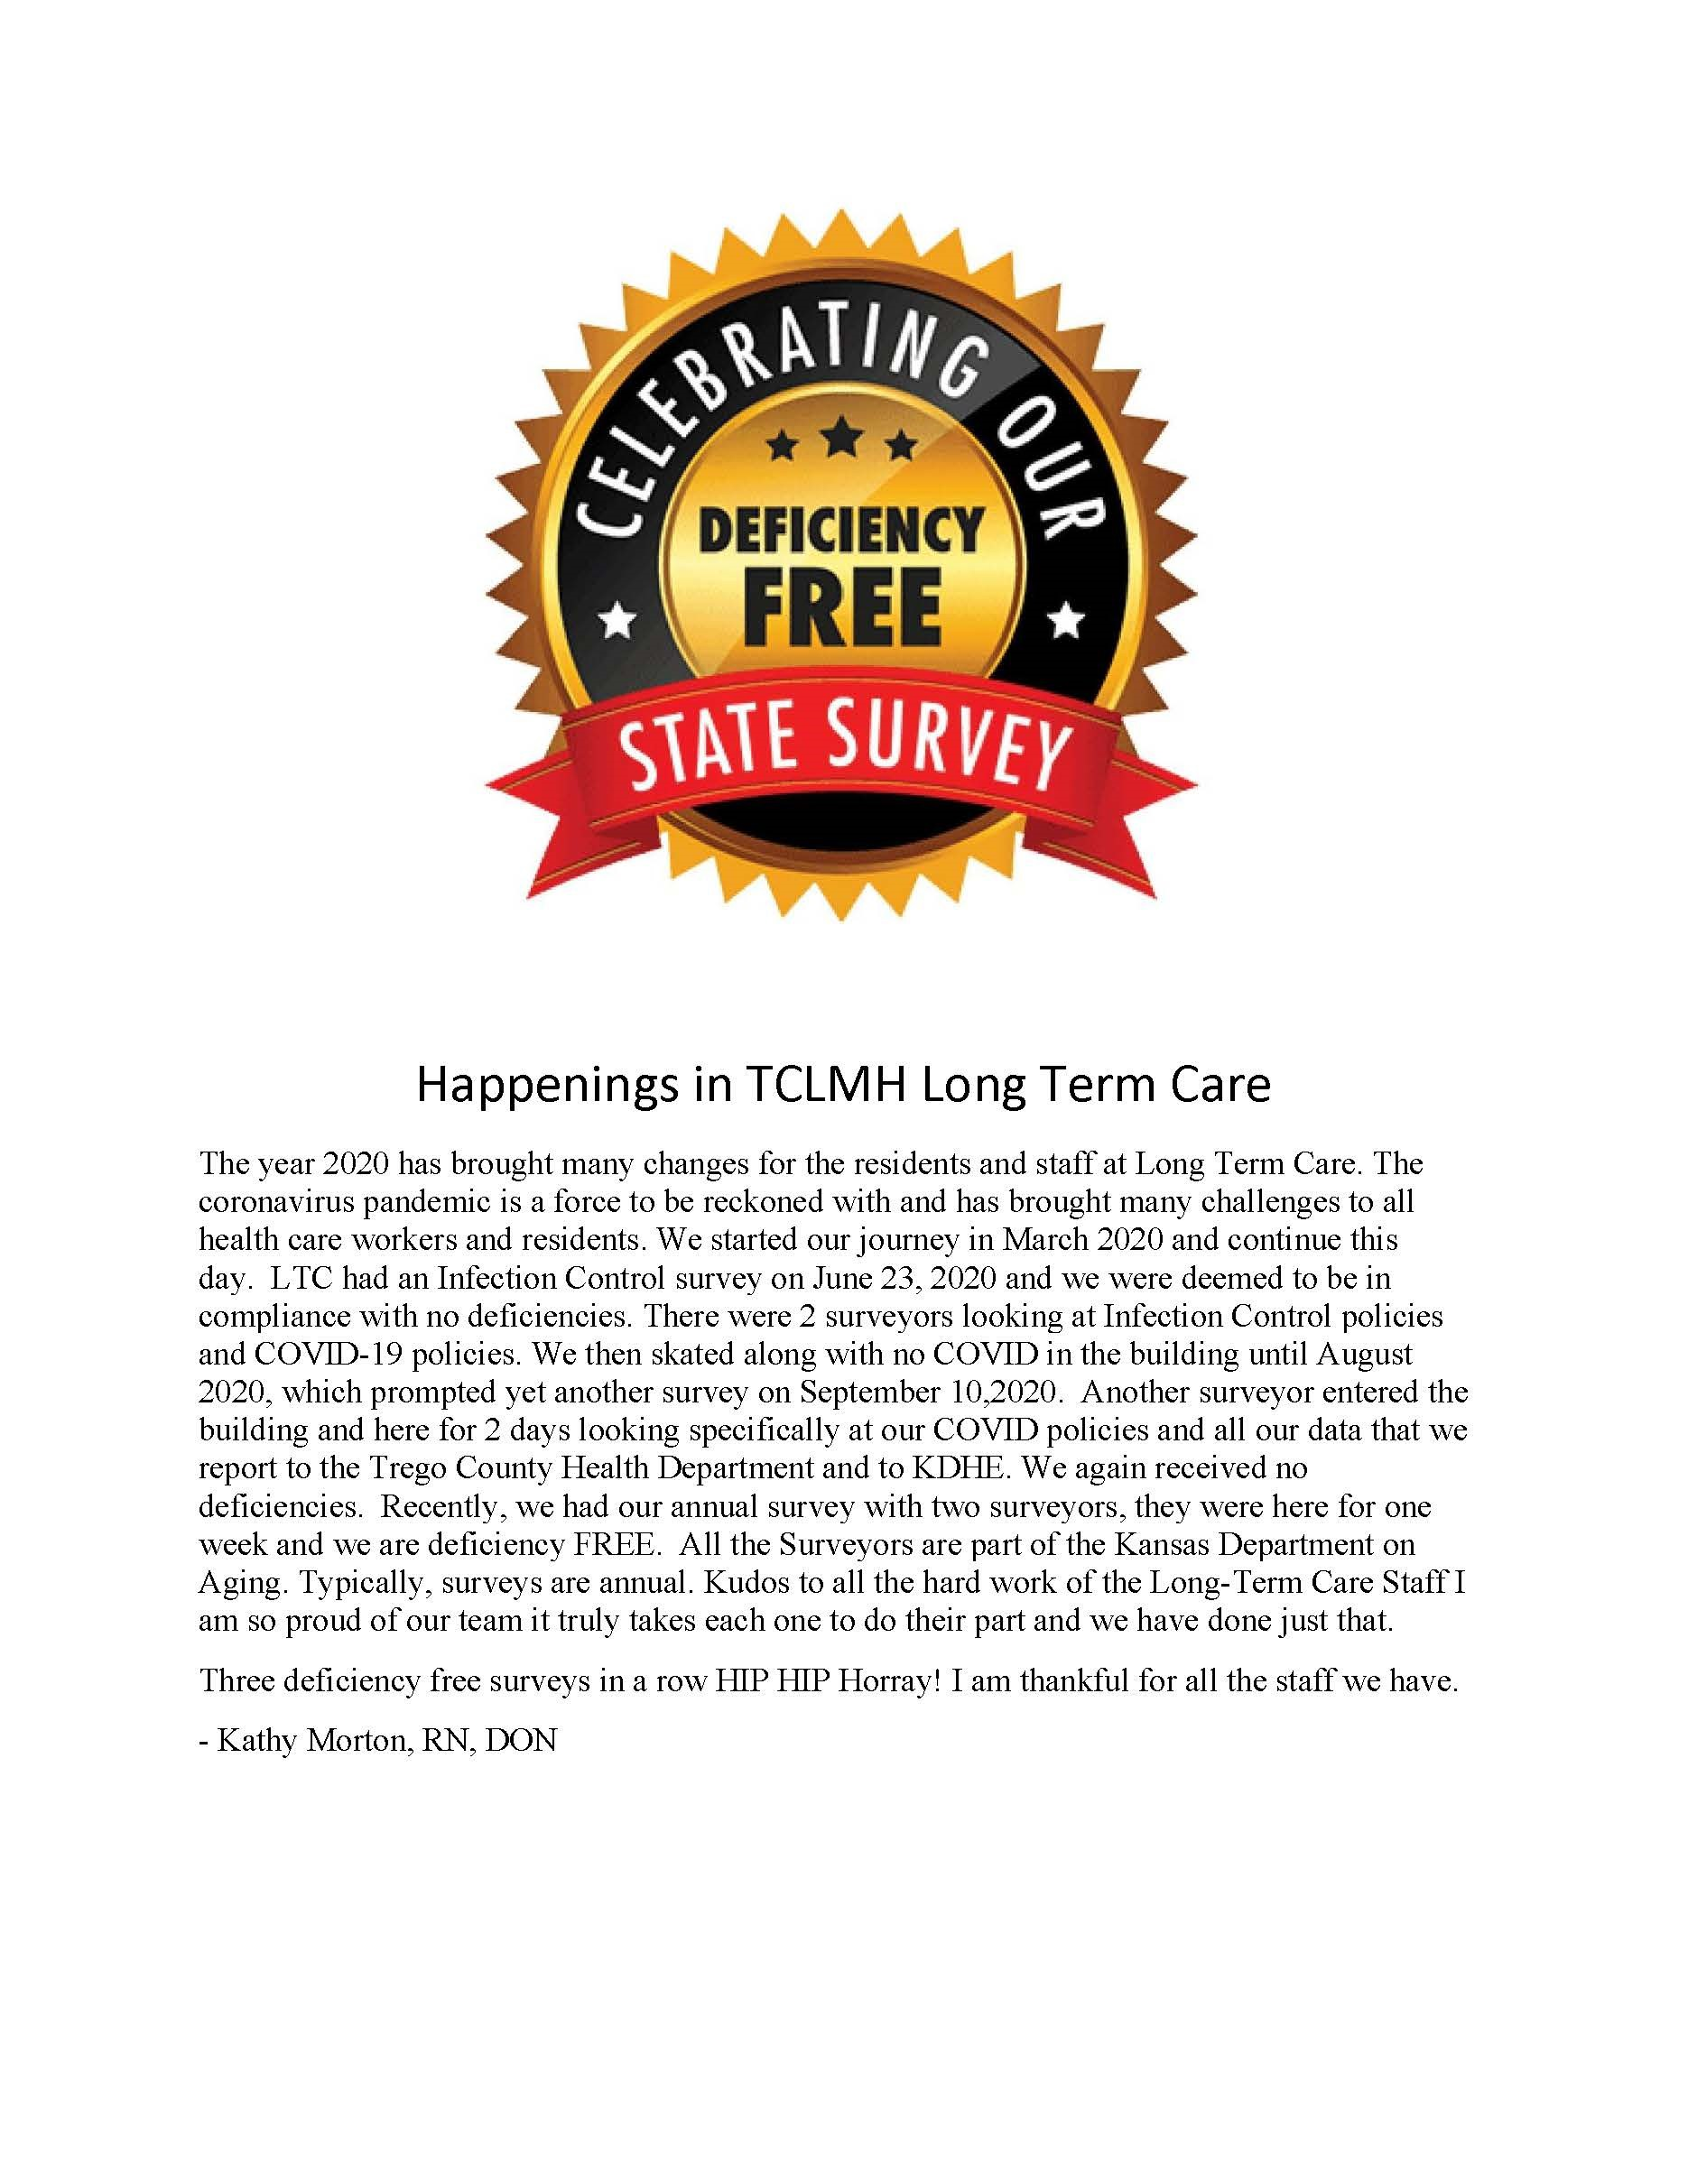 LTC Deficient Free